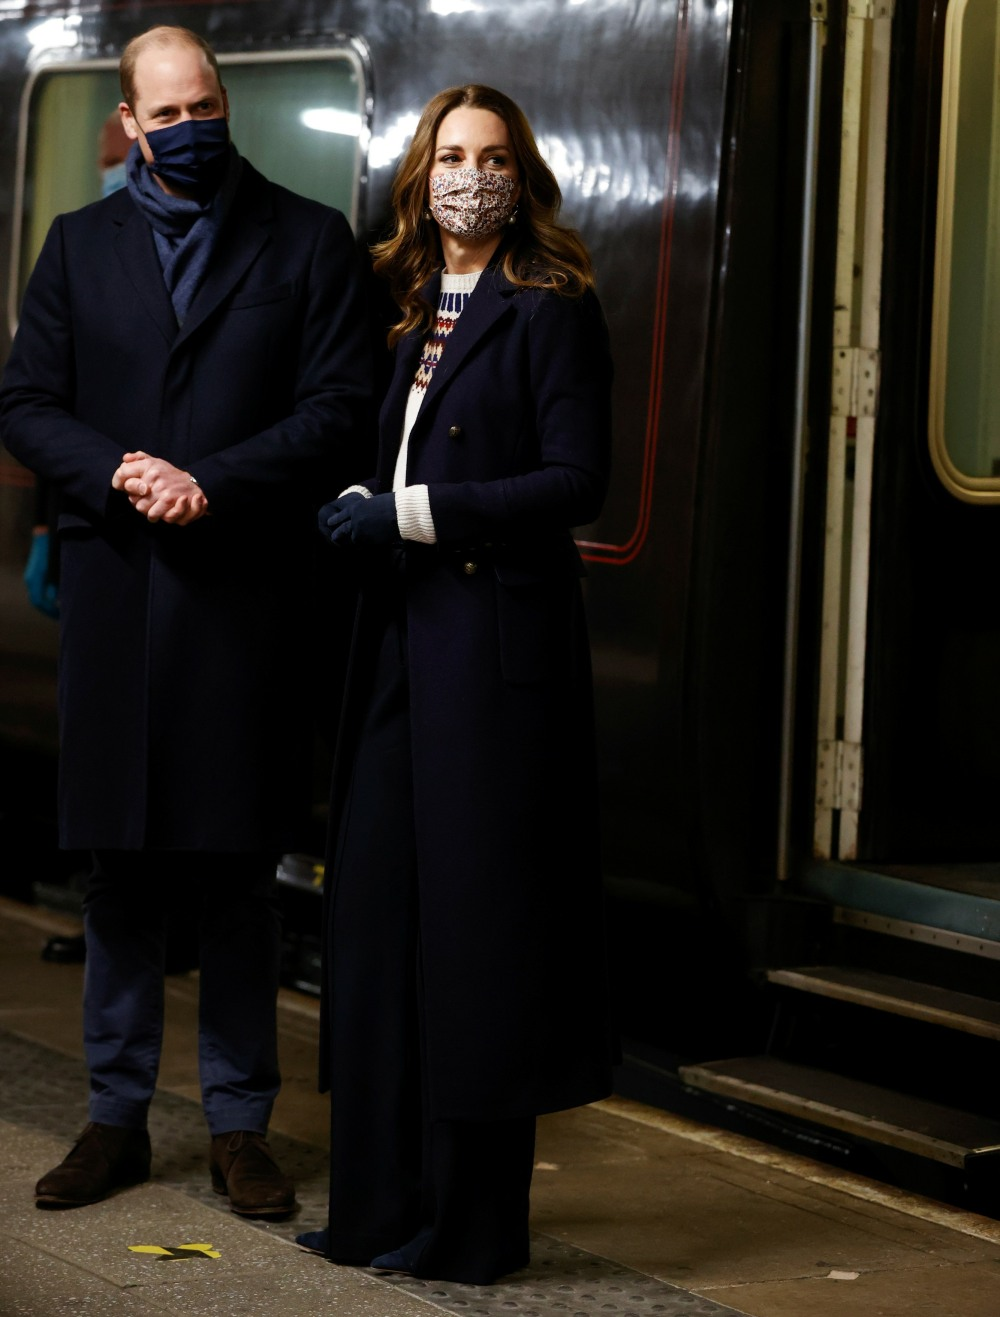 Britain's William and Catherine arrive on the Royal Train in Manchester